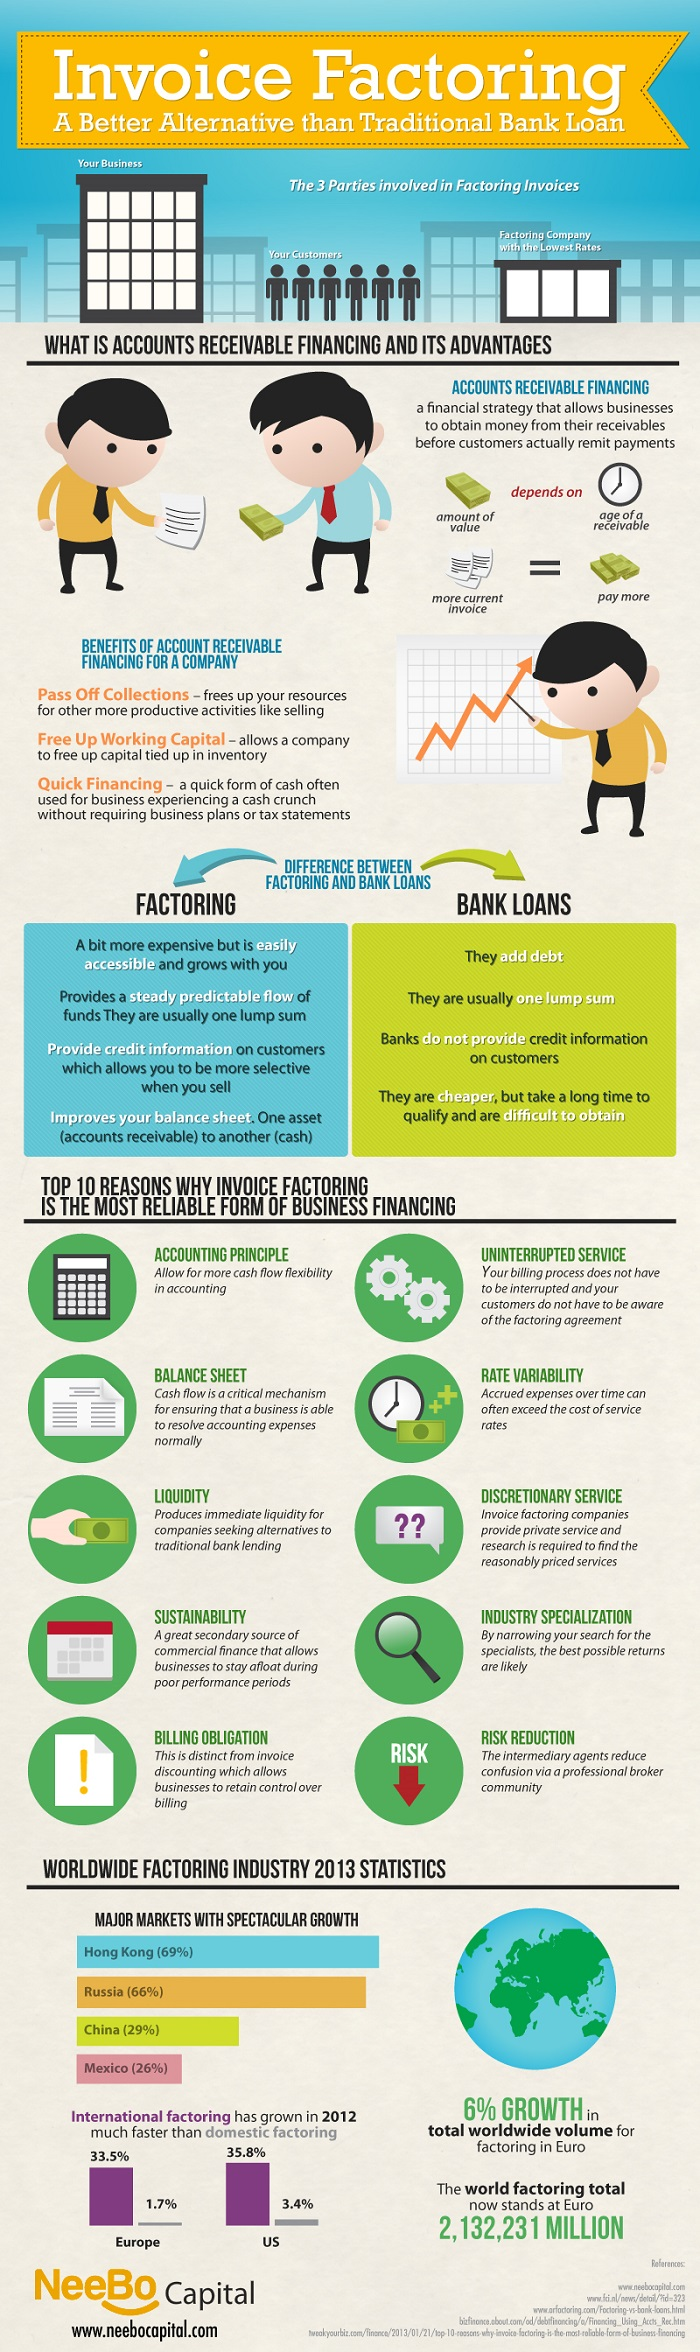 Pin By Catalina On Financiación Comercial Pinterest - Invoice loans